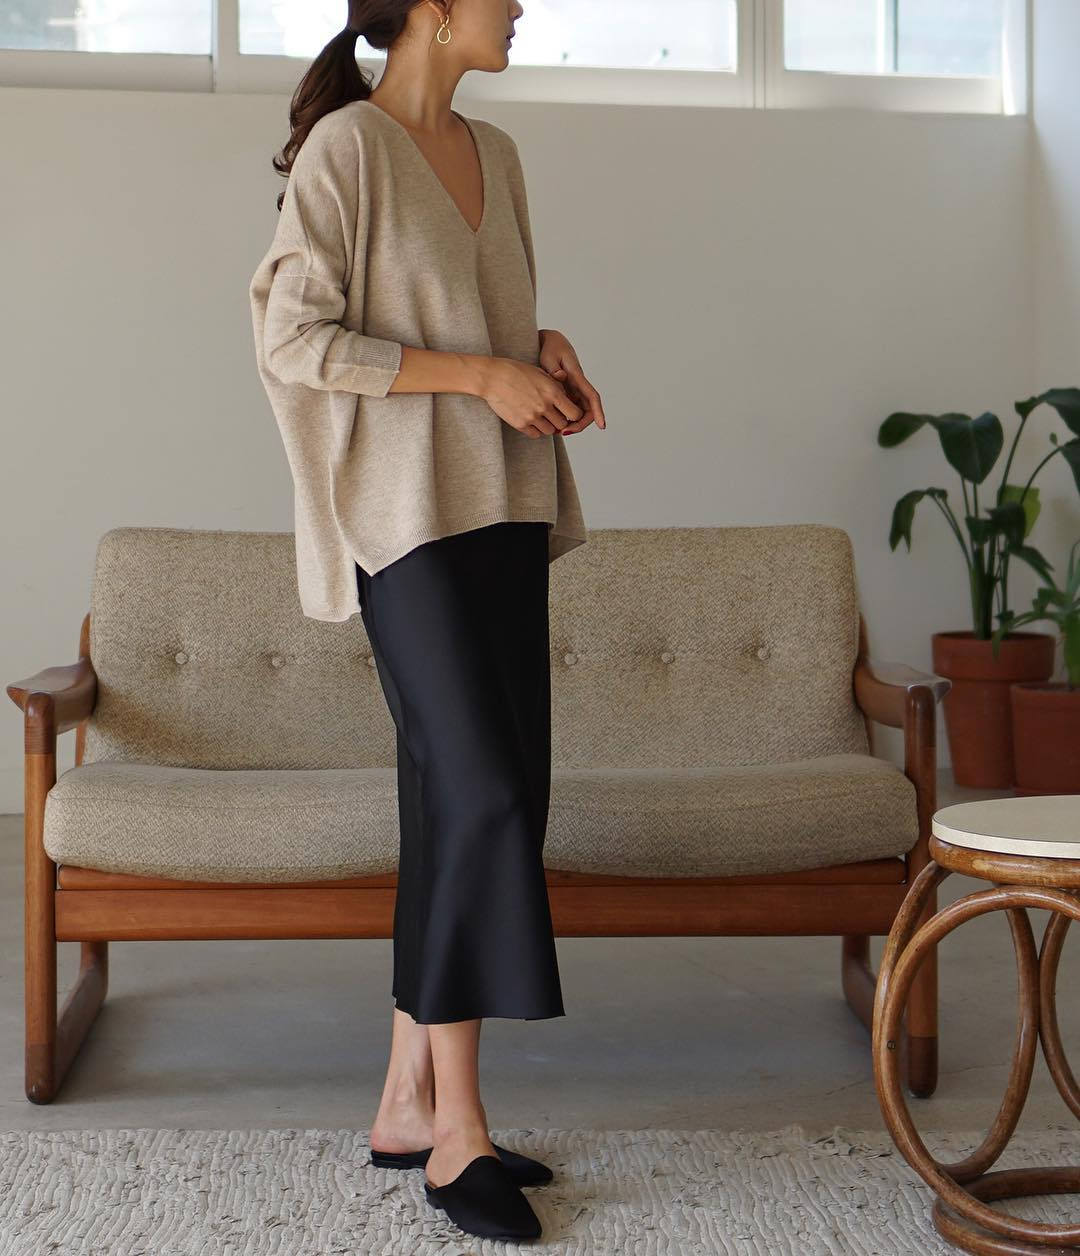 Comfy Yet Stylish Work-From-Home Spring Outfit Idea — neutral v-neck sweater, silk black midi skirt, and black mule flats